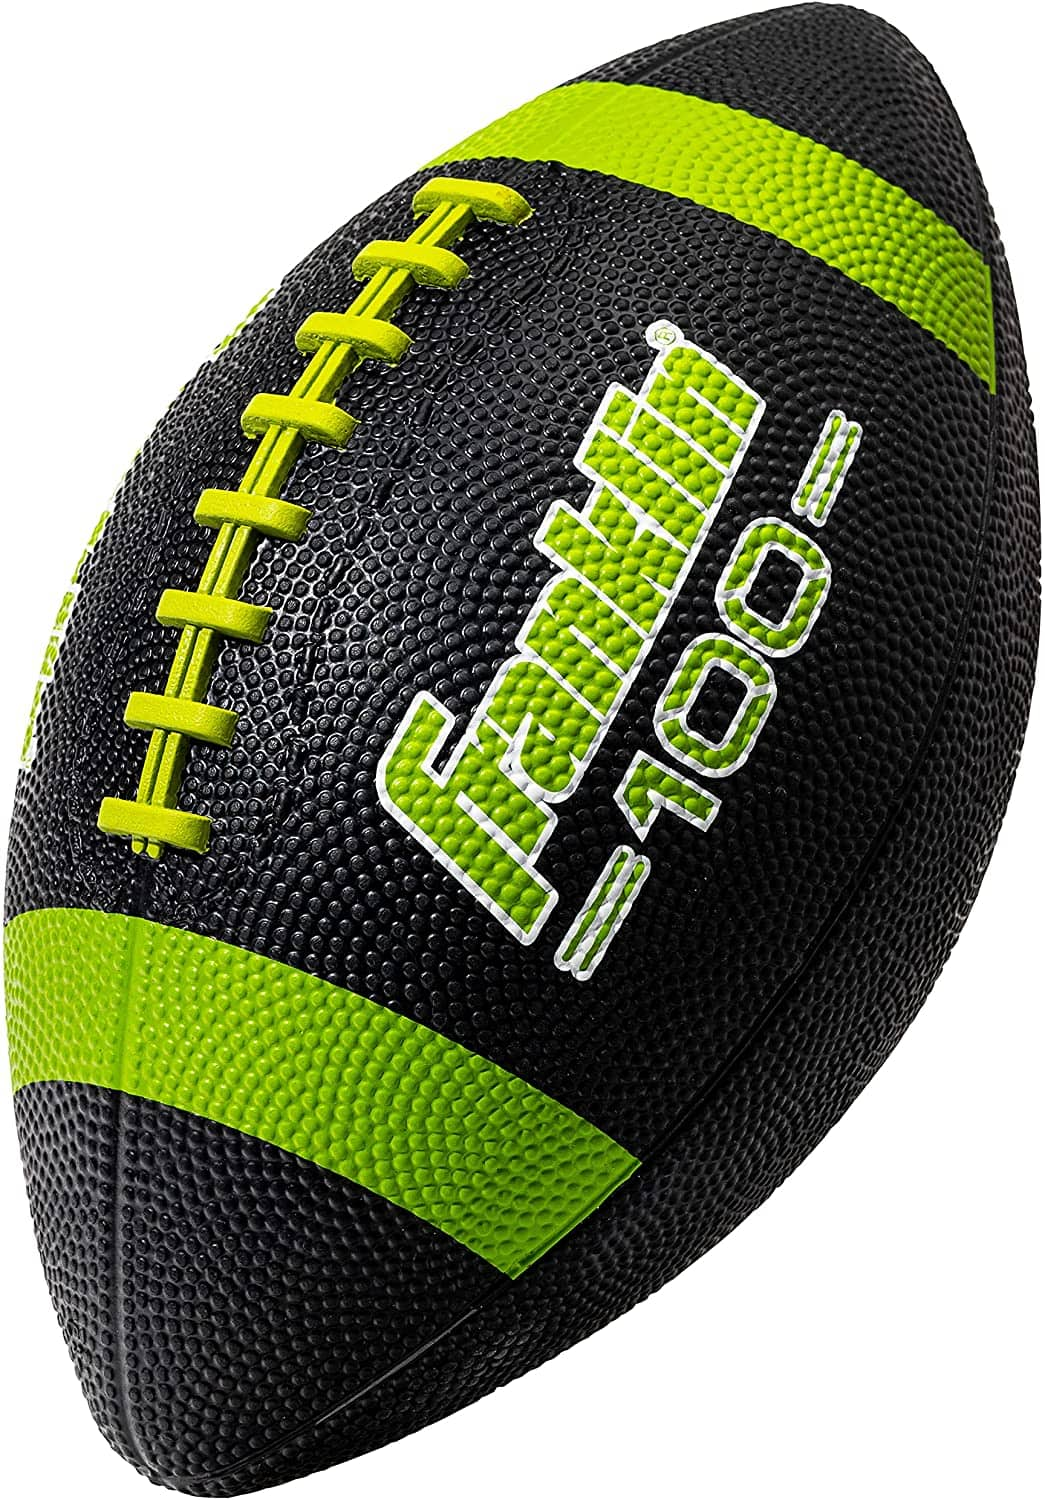 Franklin Sports Grip-Rite 100 Rubber Junior Football (Black or Blue) $4.90 + Free Shipping w/ Prime or $25+